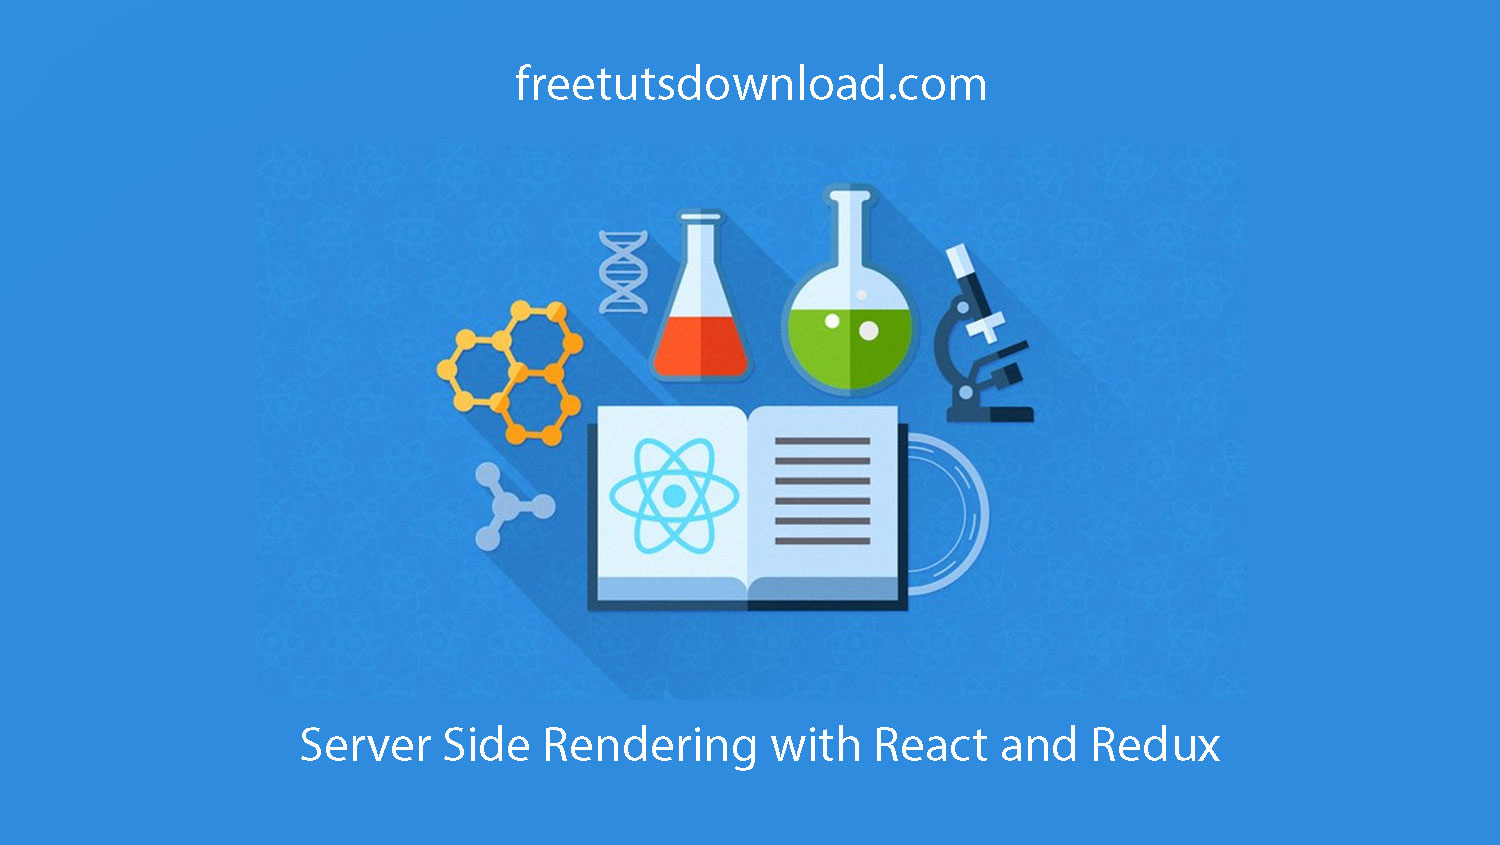 Server Side Rendering with React and Redux